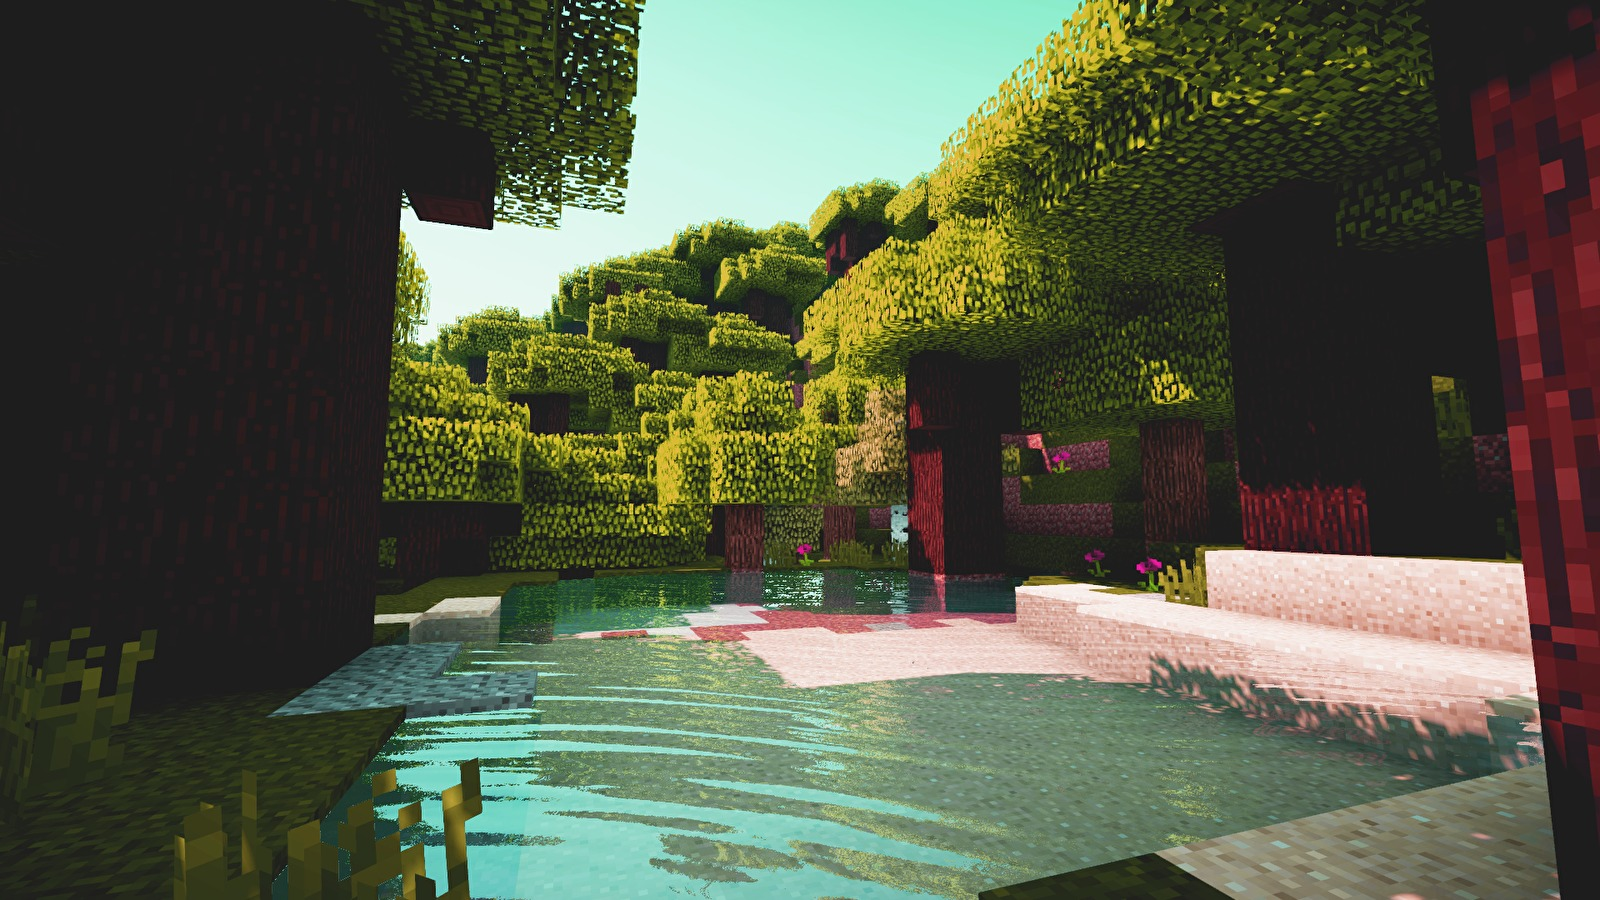 Minecraft Shaders Screenshot Edited 1920x1080  Wallpapers